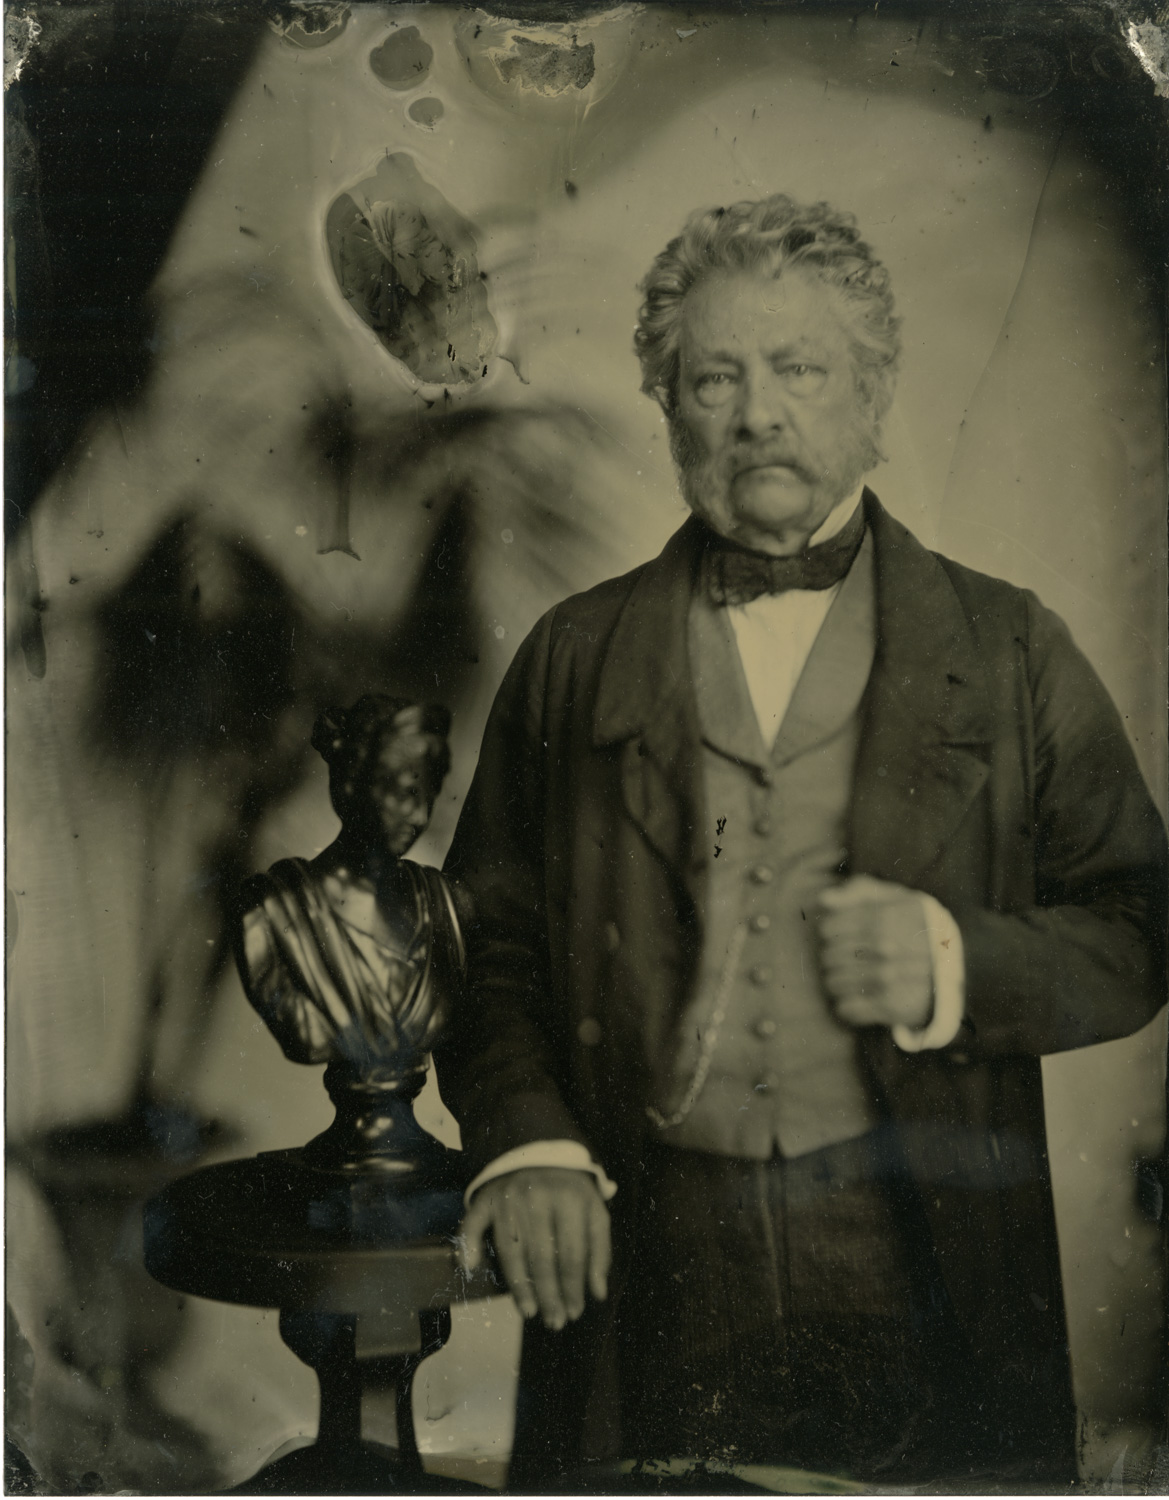 Chris Cooper wet plate #1 - Wilson Webb, Colombia Pictures - Little Women (2019)